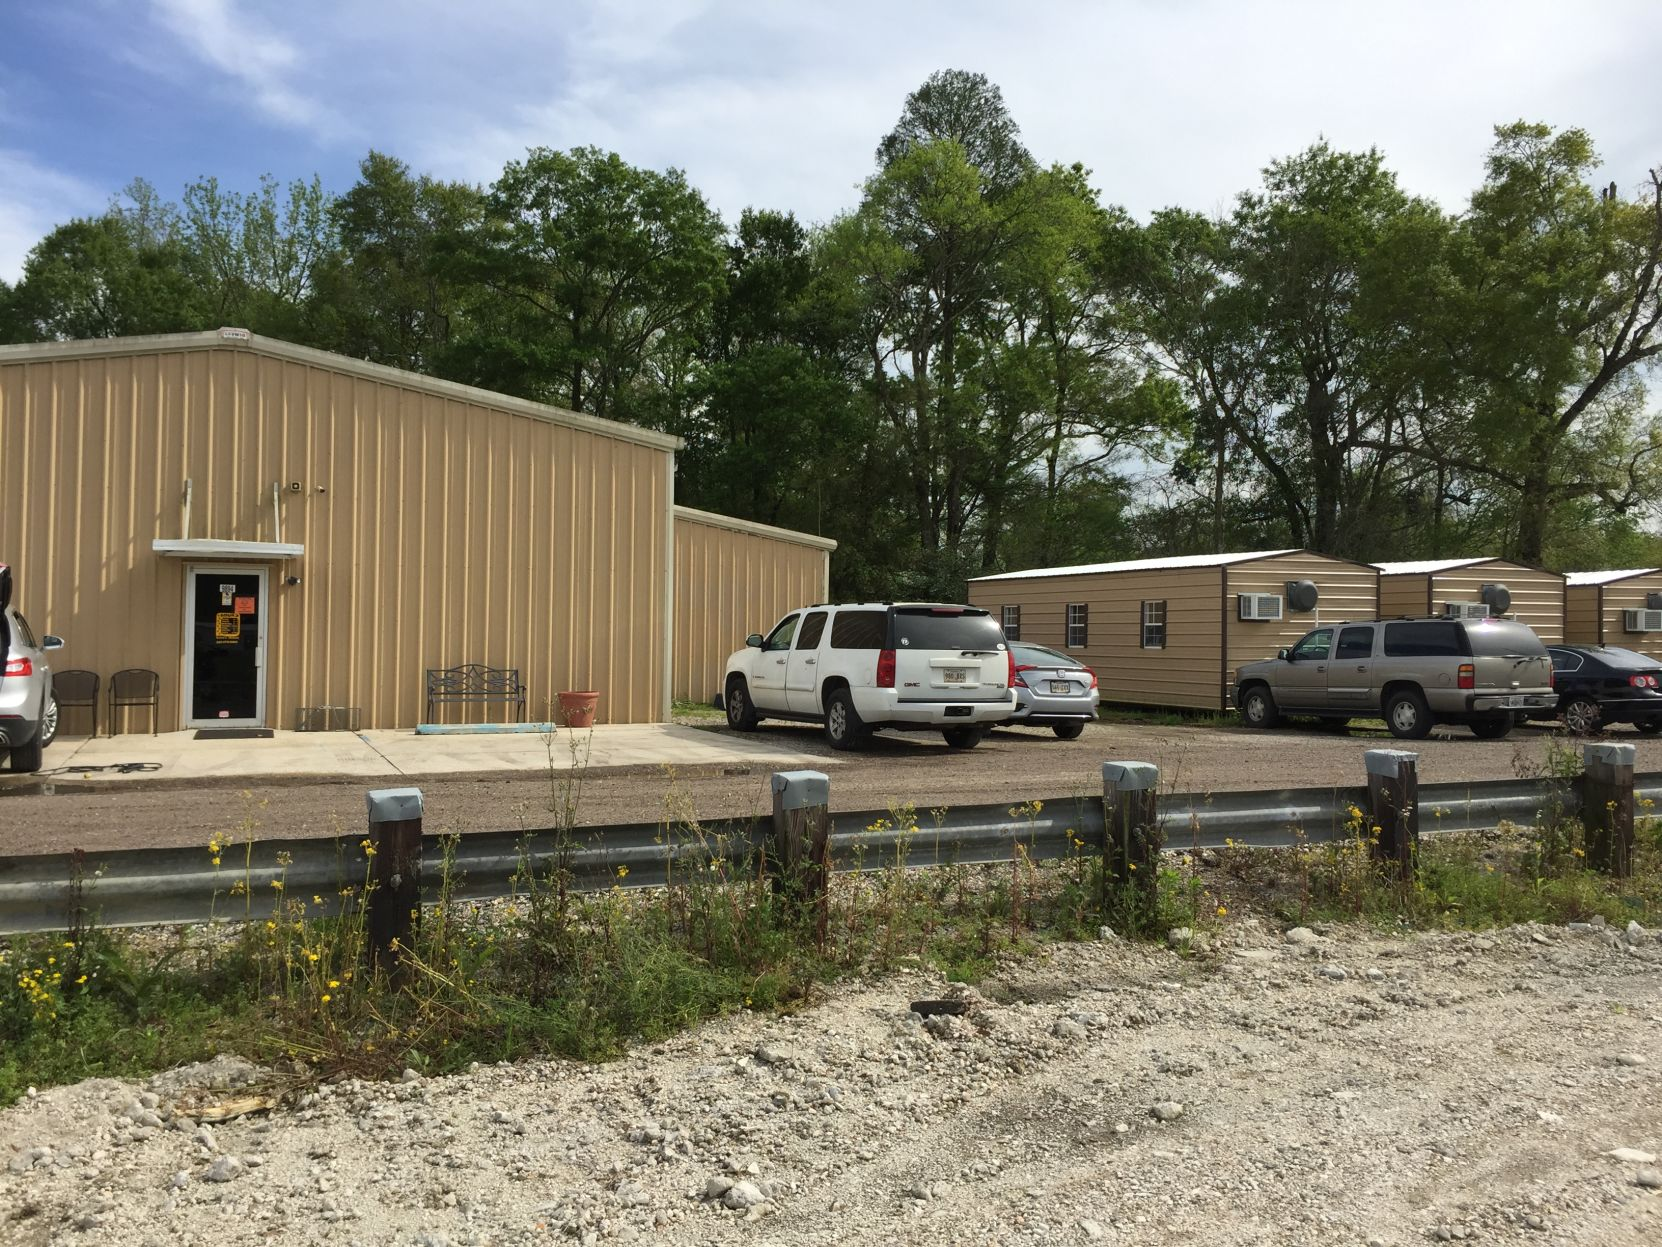 Wanted: Volunteers to serve on new board overseeing animal services in Ascension Parish